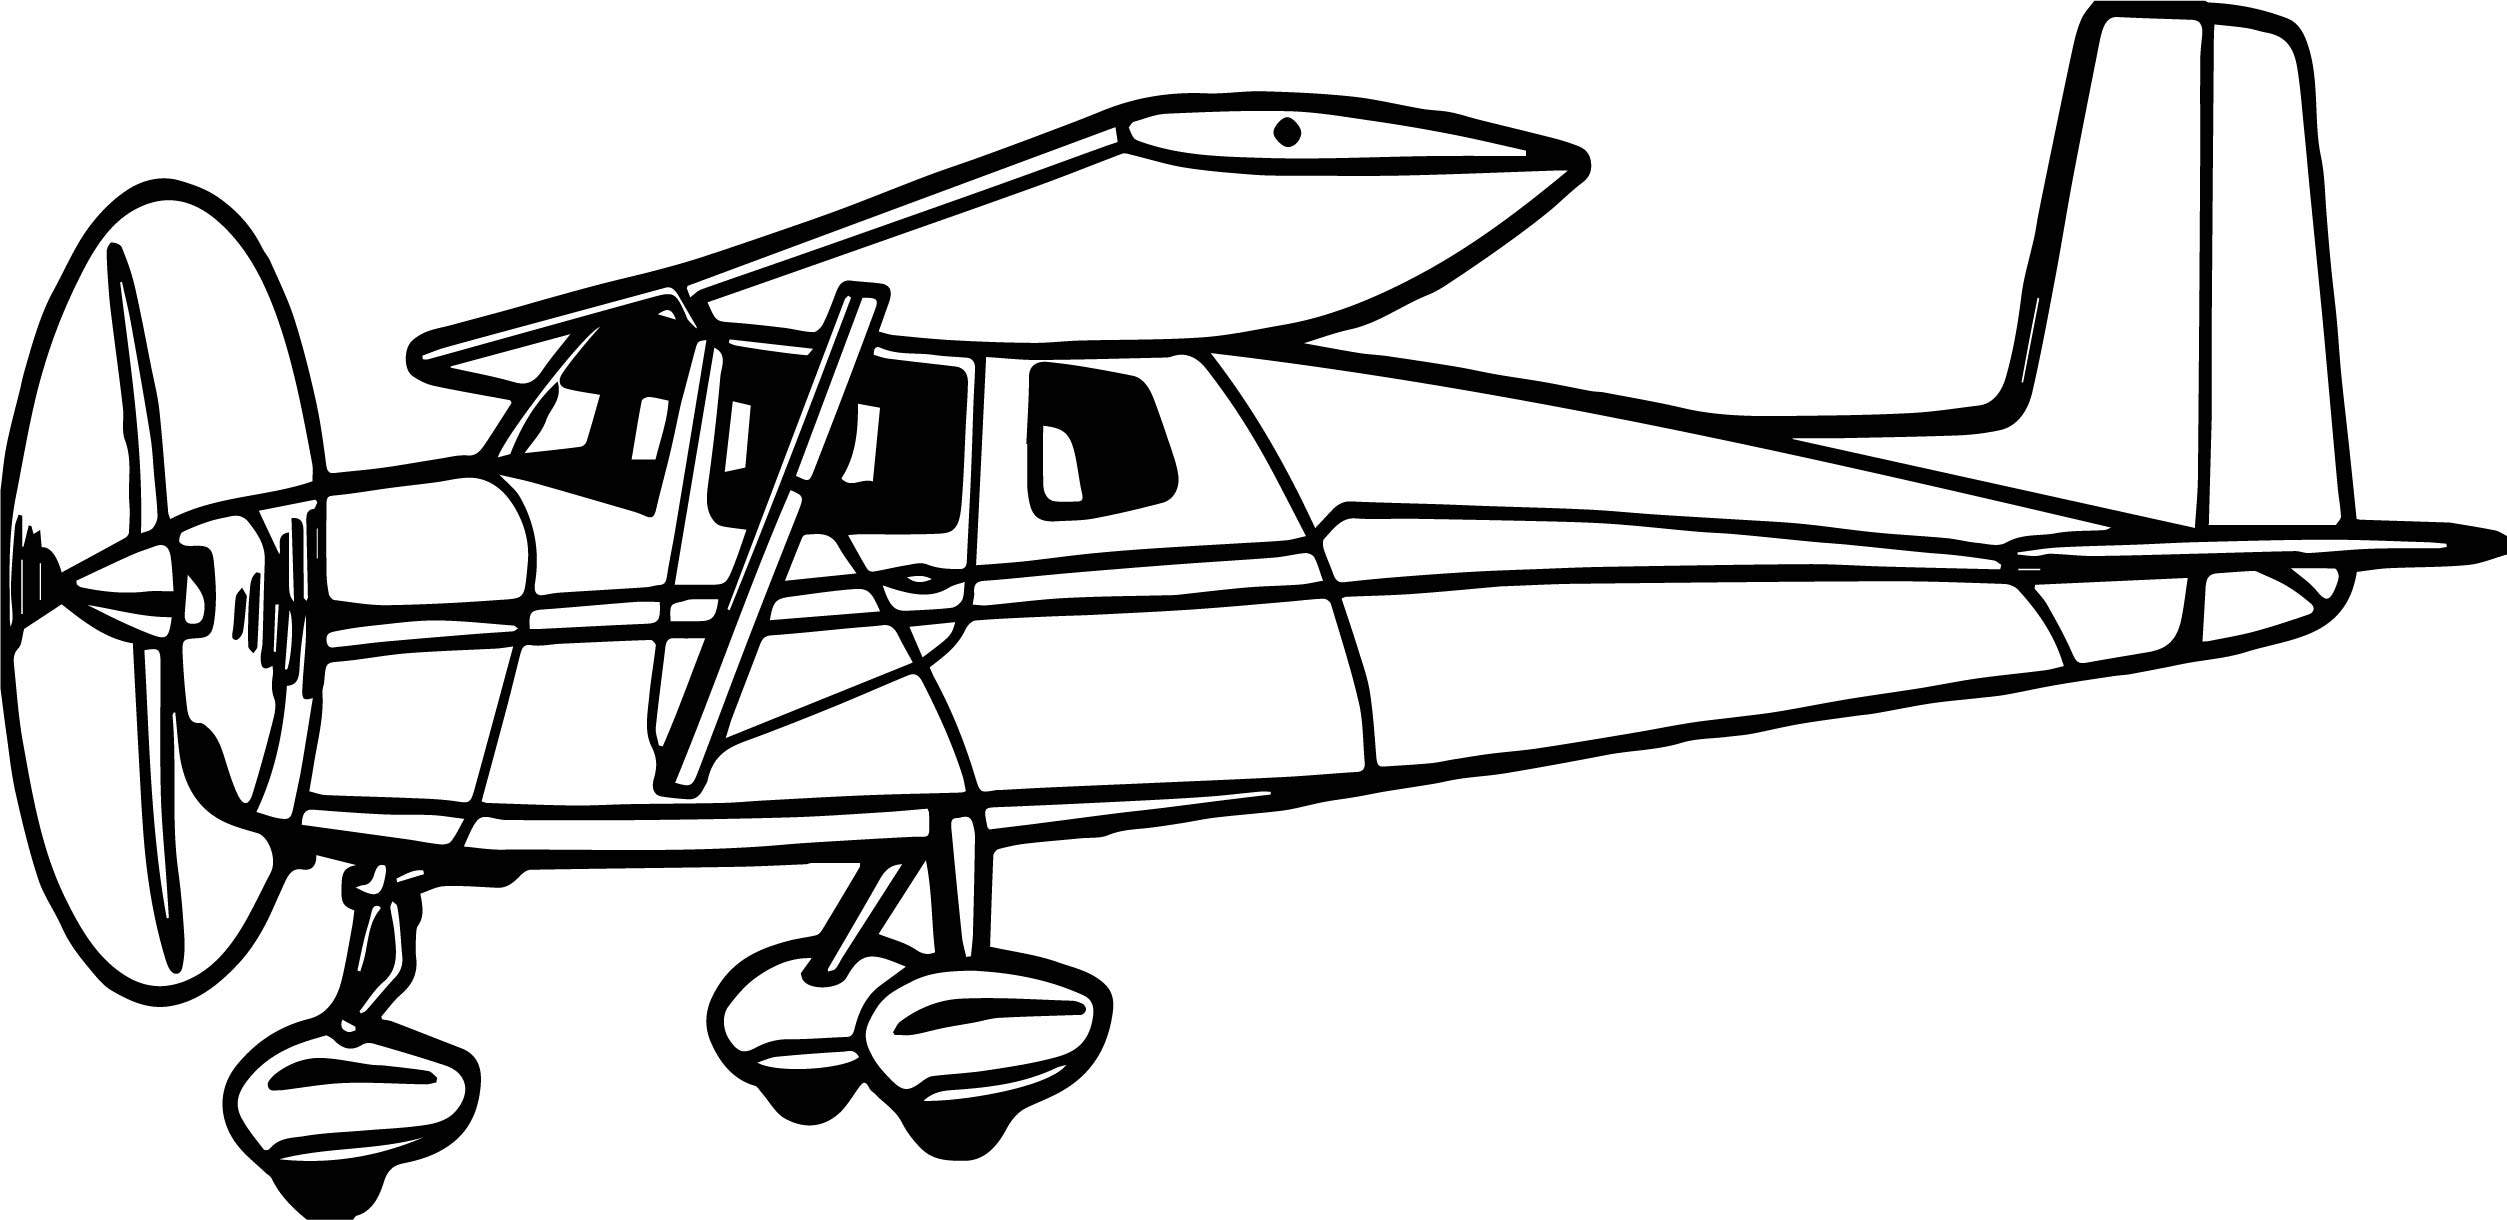 Illustration of a cessna airplane coloring page for Airplane coloring page printable